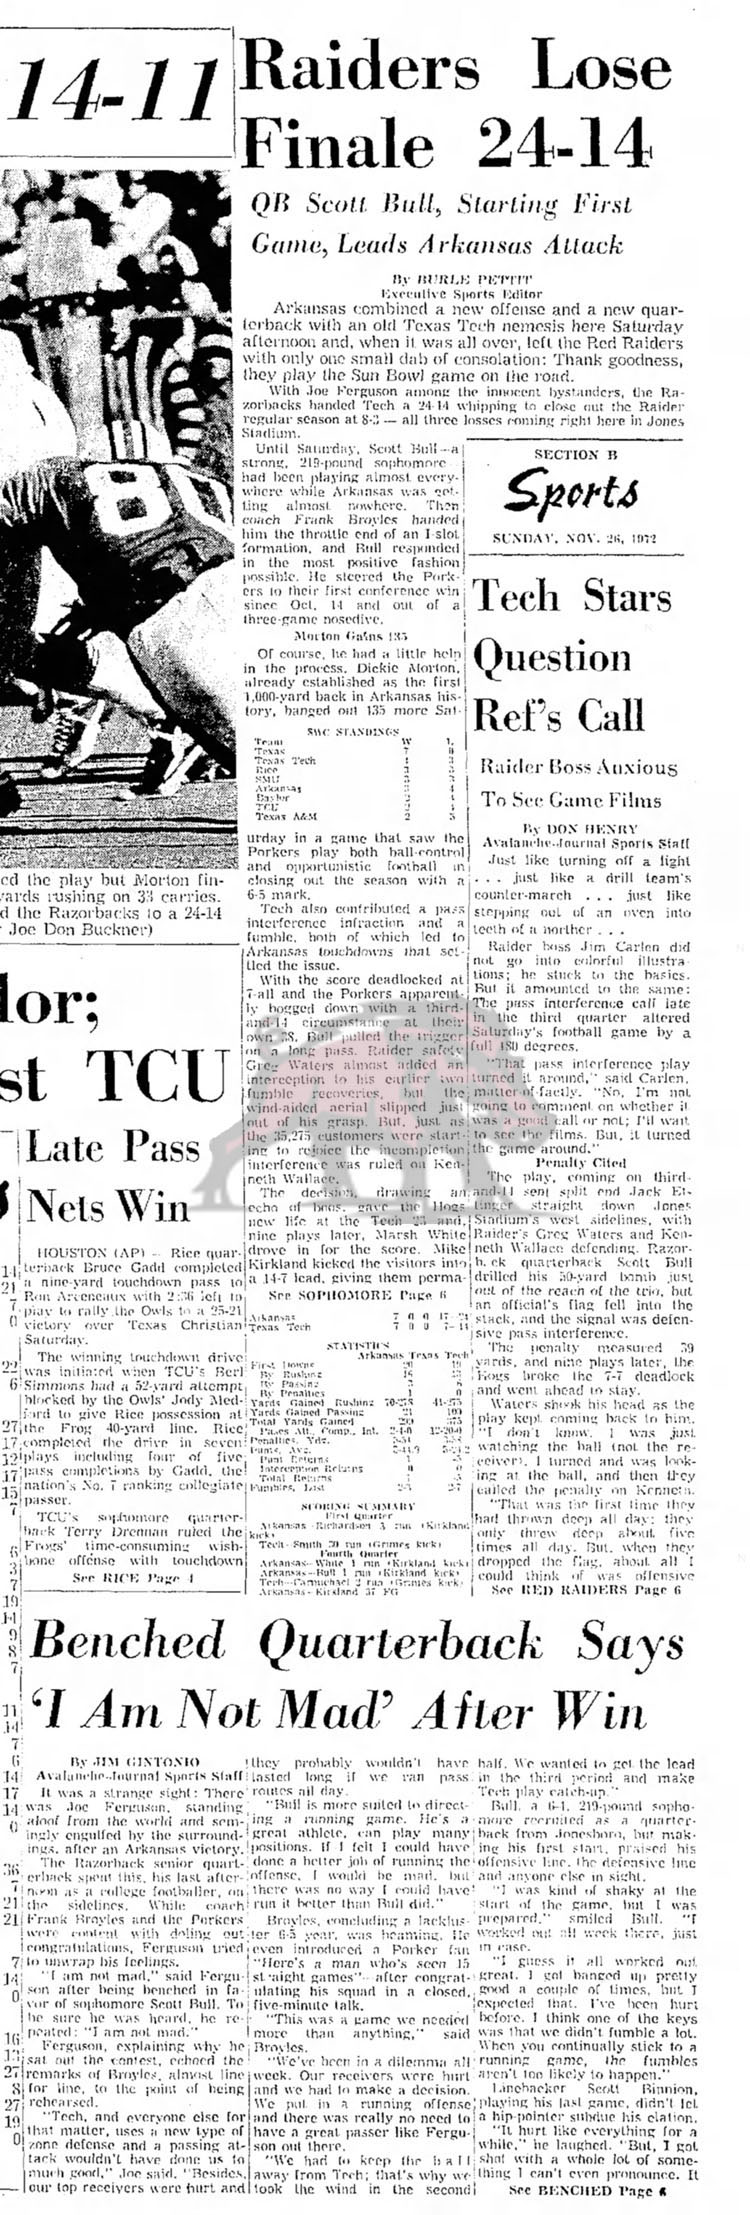 1972-11-26 Lubbock_Avalanche_Journal_Sun__Nov_26__1972_